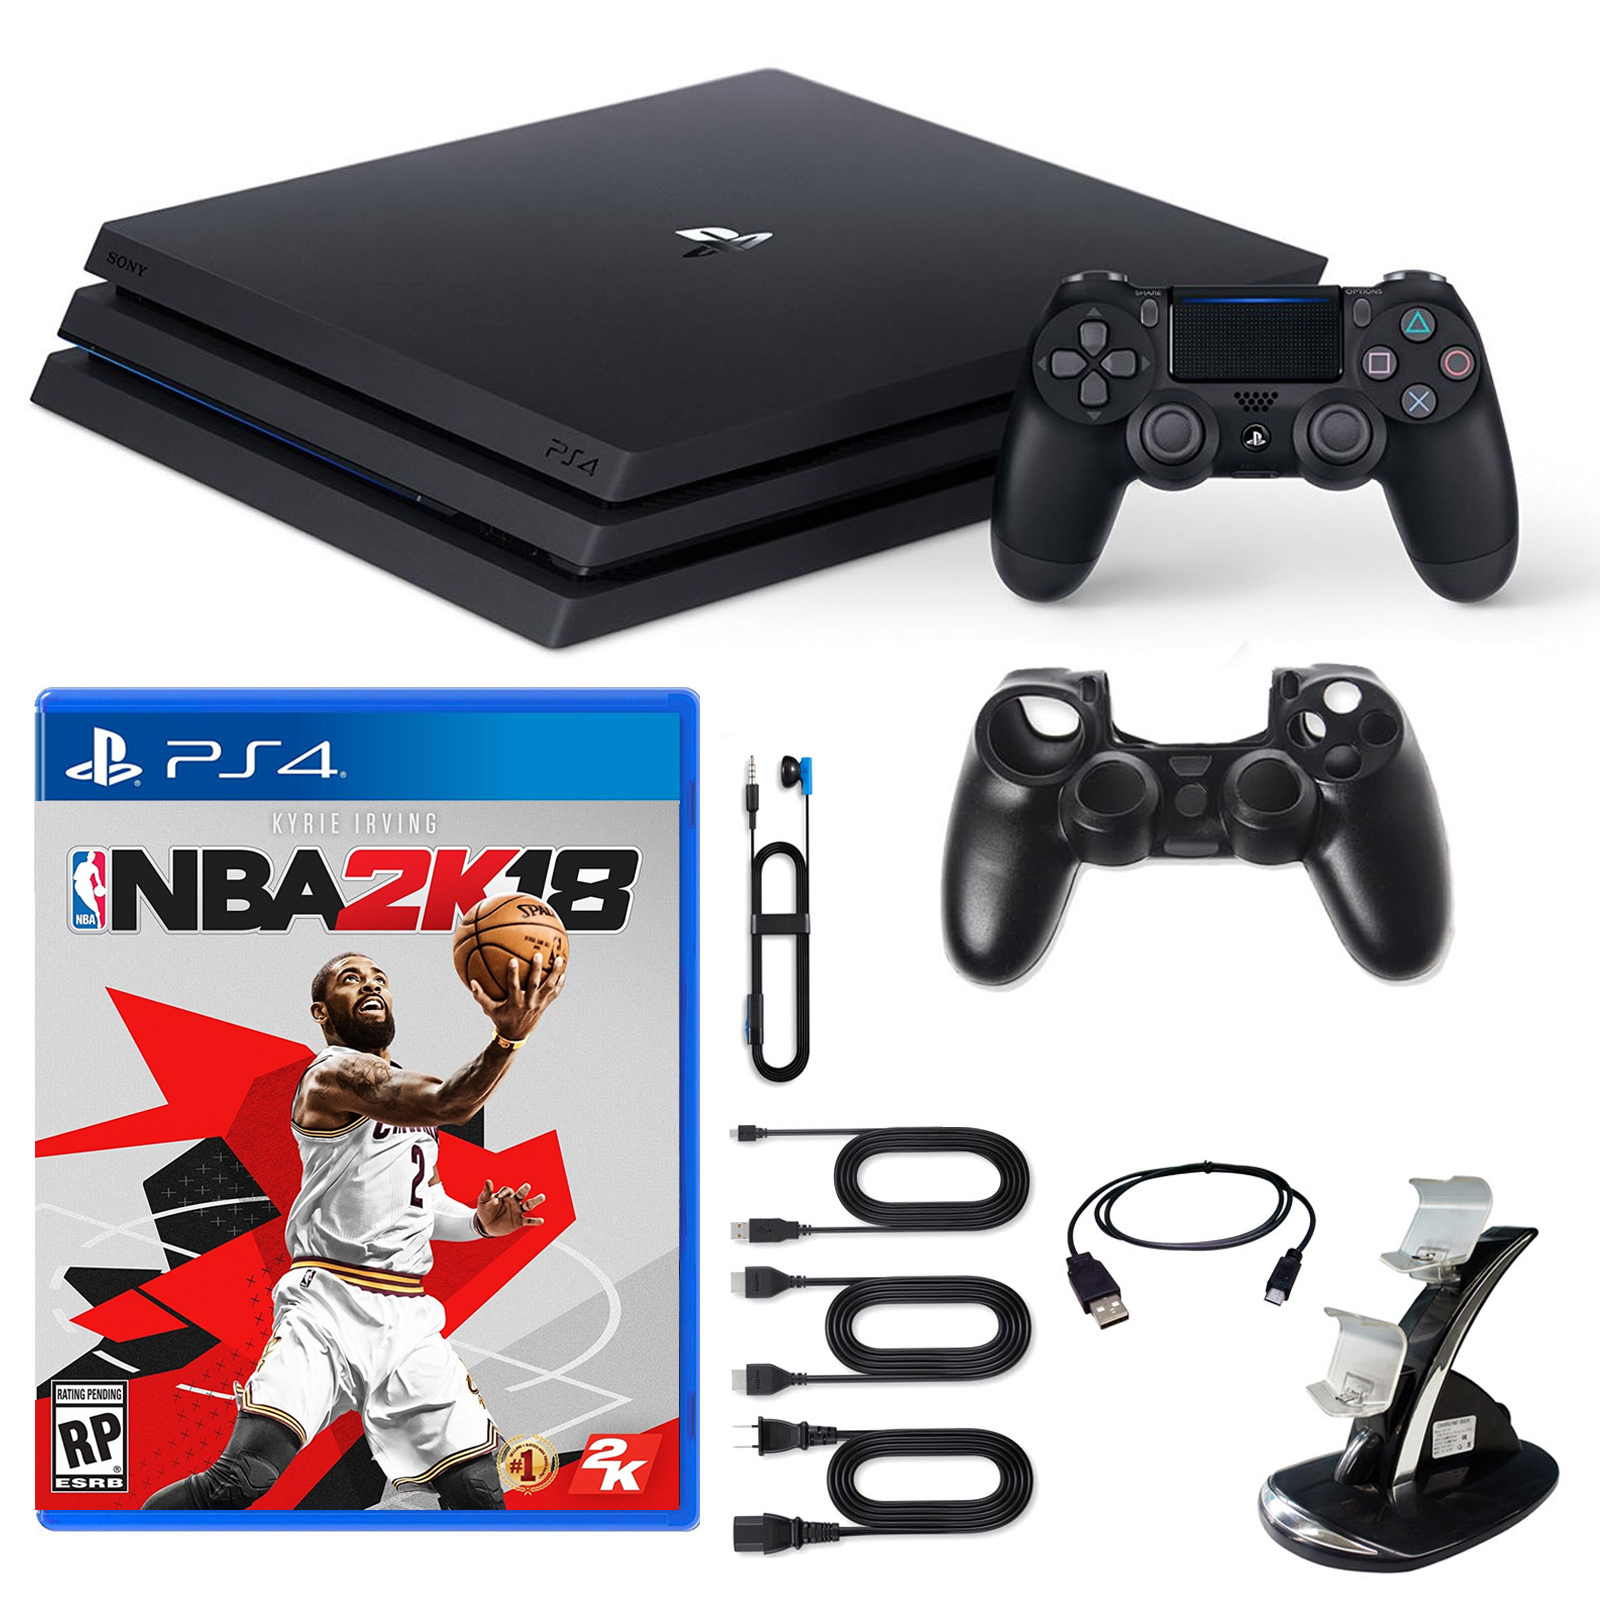 PlayStation 4 Pro Console NBA2K18 and Accessories by PlayStation